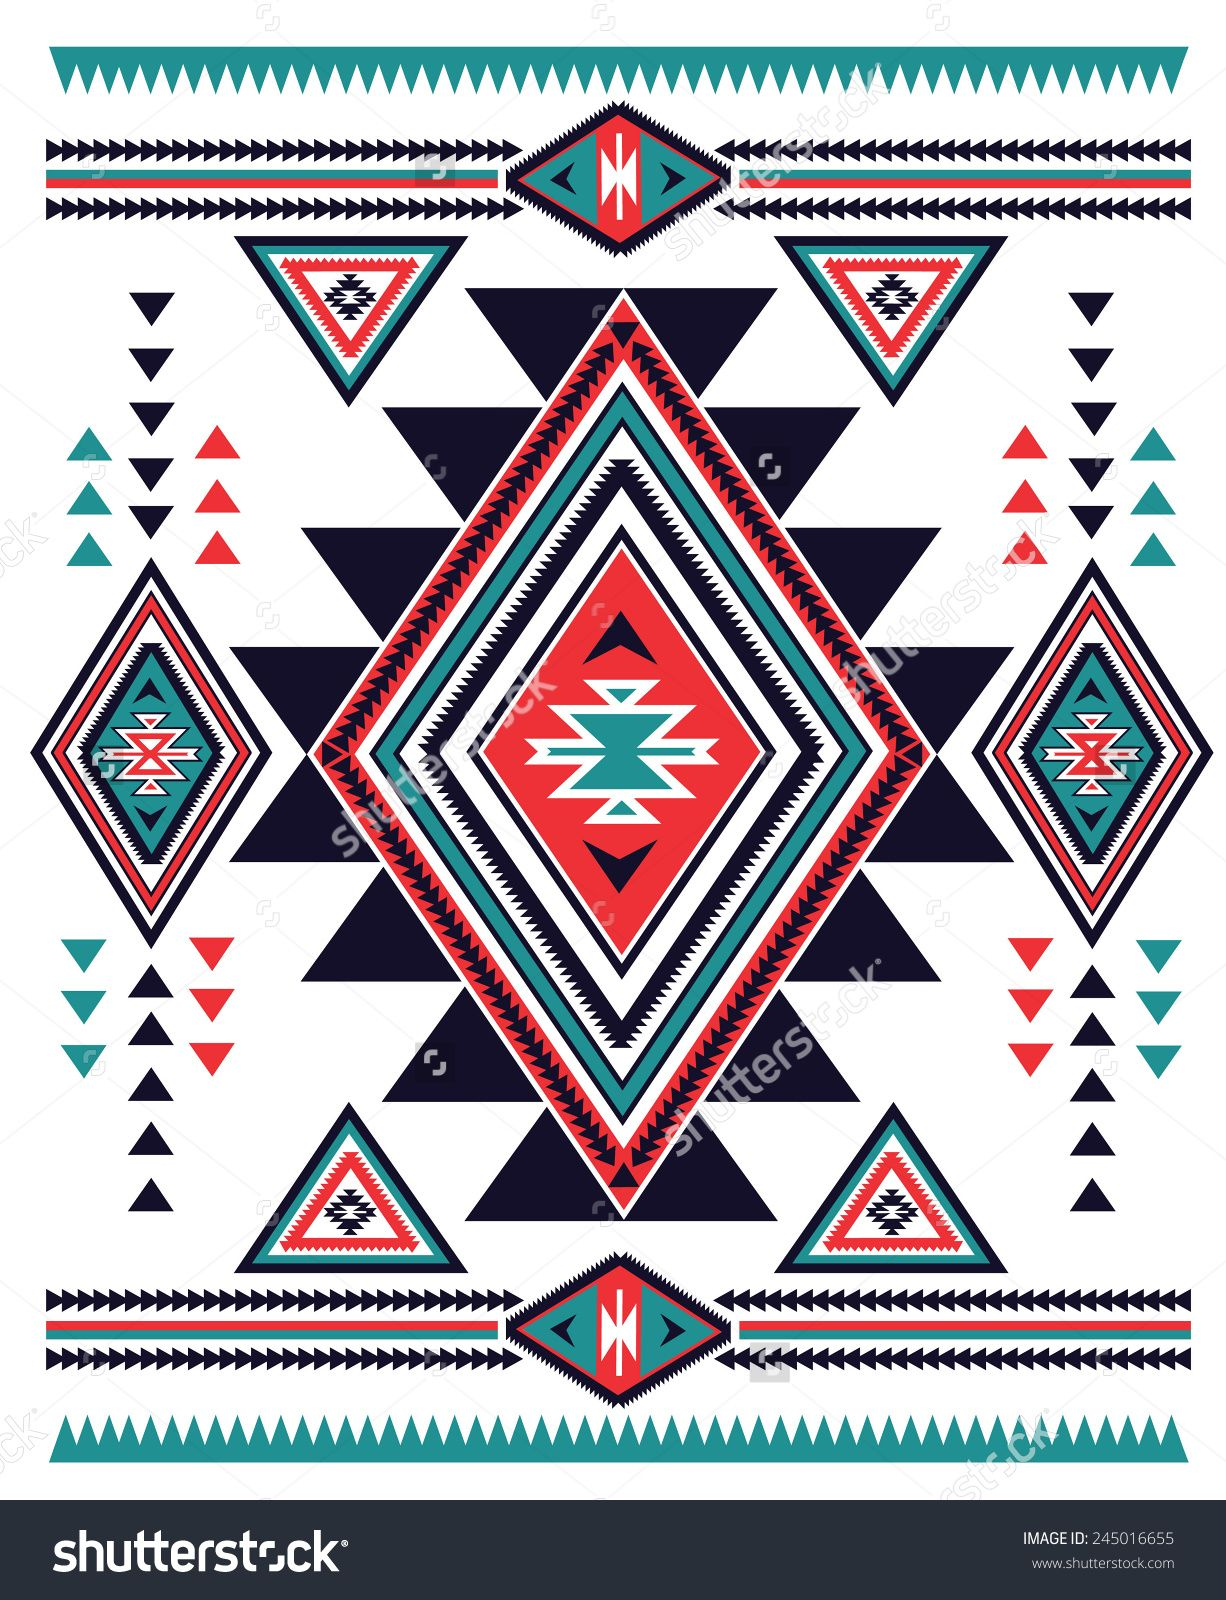 Background geometric mexican patterns seamless vector zigzag maya - Navajo Aztec Big Pattern Vector Illustration 245016655 Shutterstock